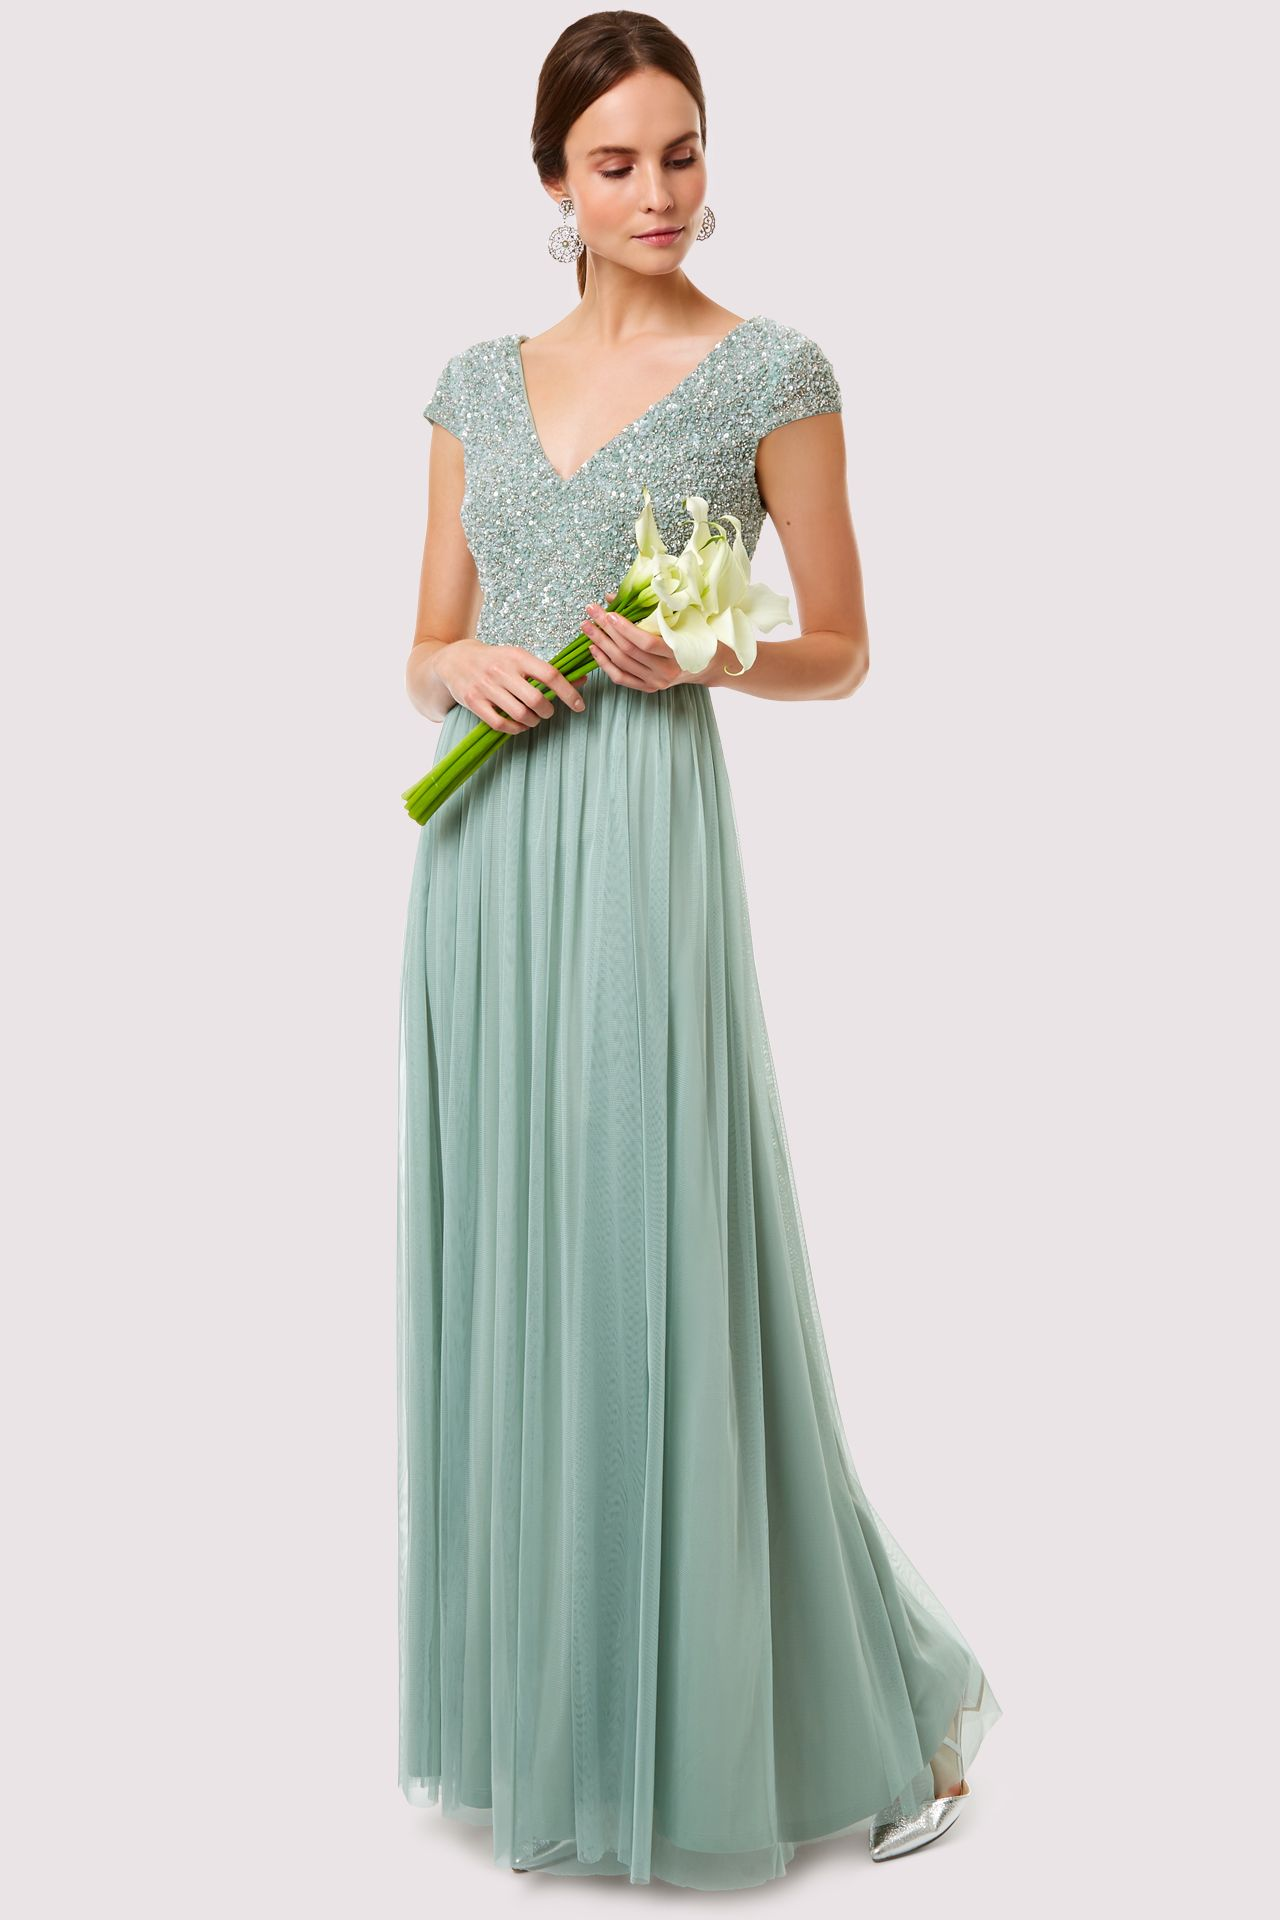 Pin by Bijou Bridal Boutique on Motee Maids - new bridesmaid ...